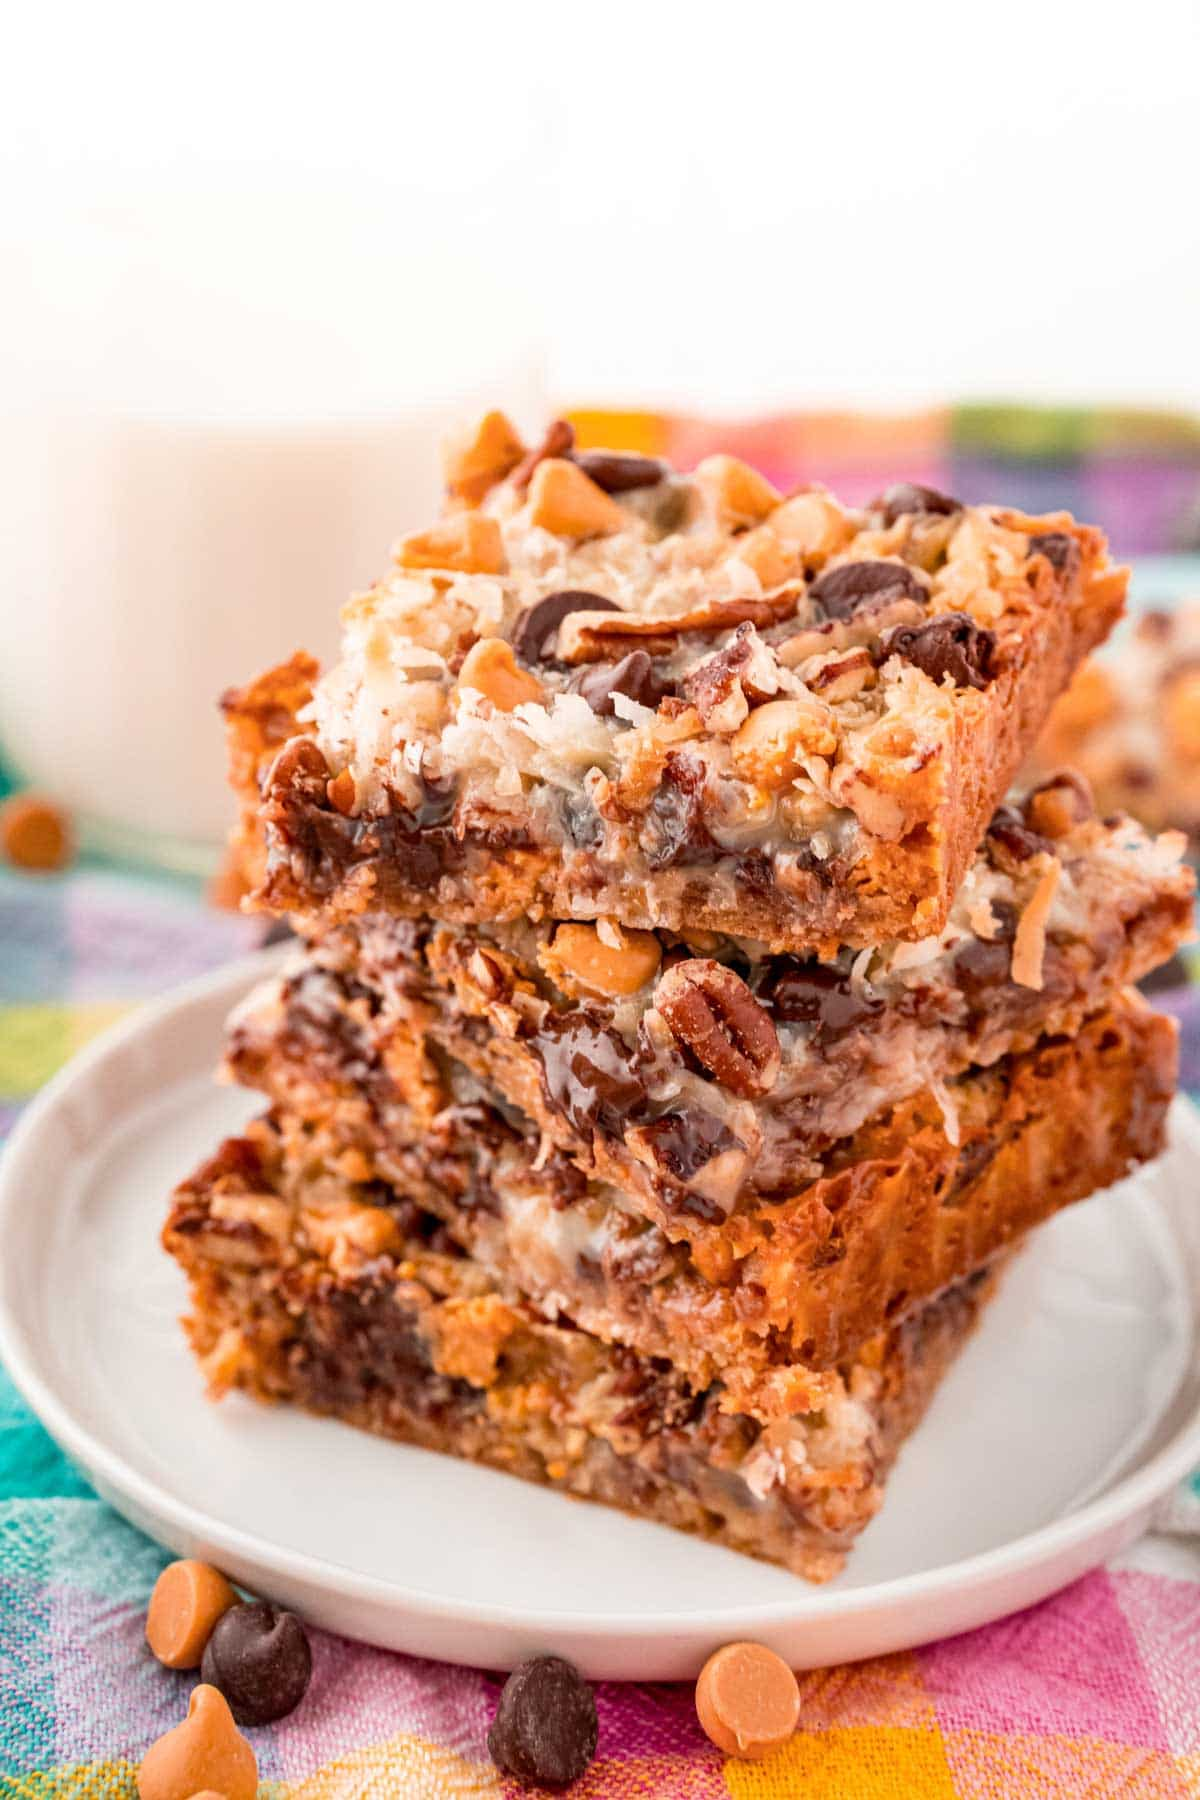 Three 7-layer bars stacked on top of each other